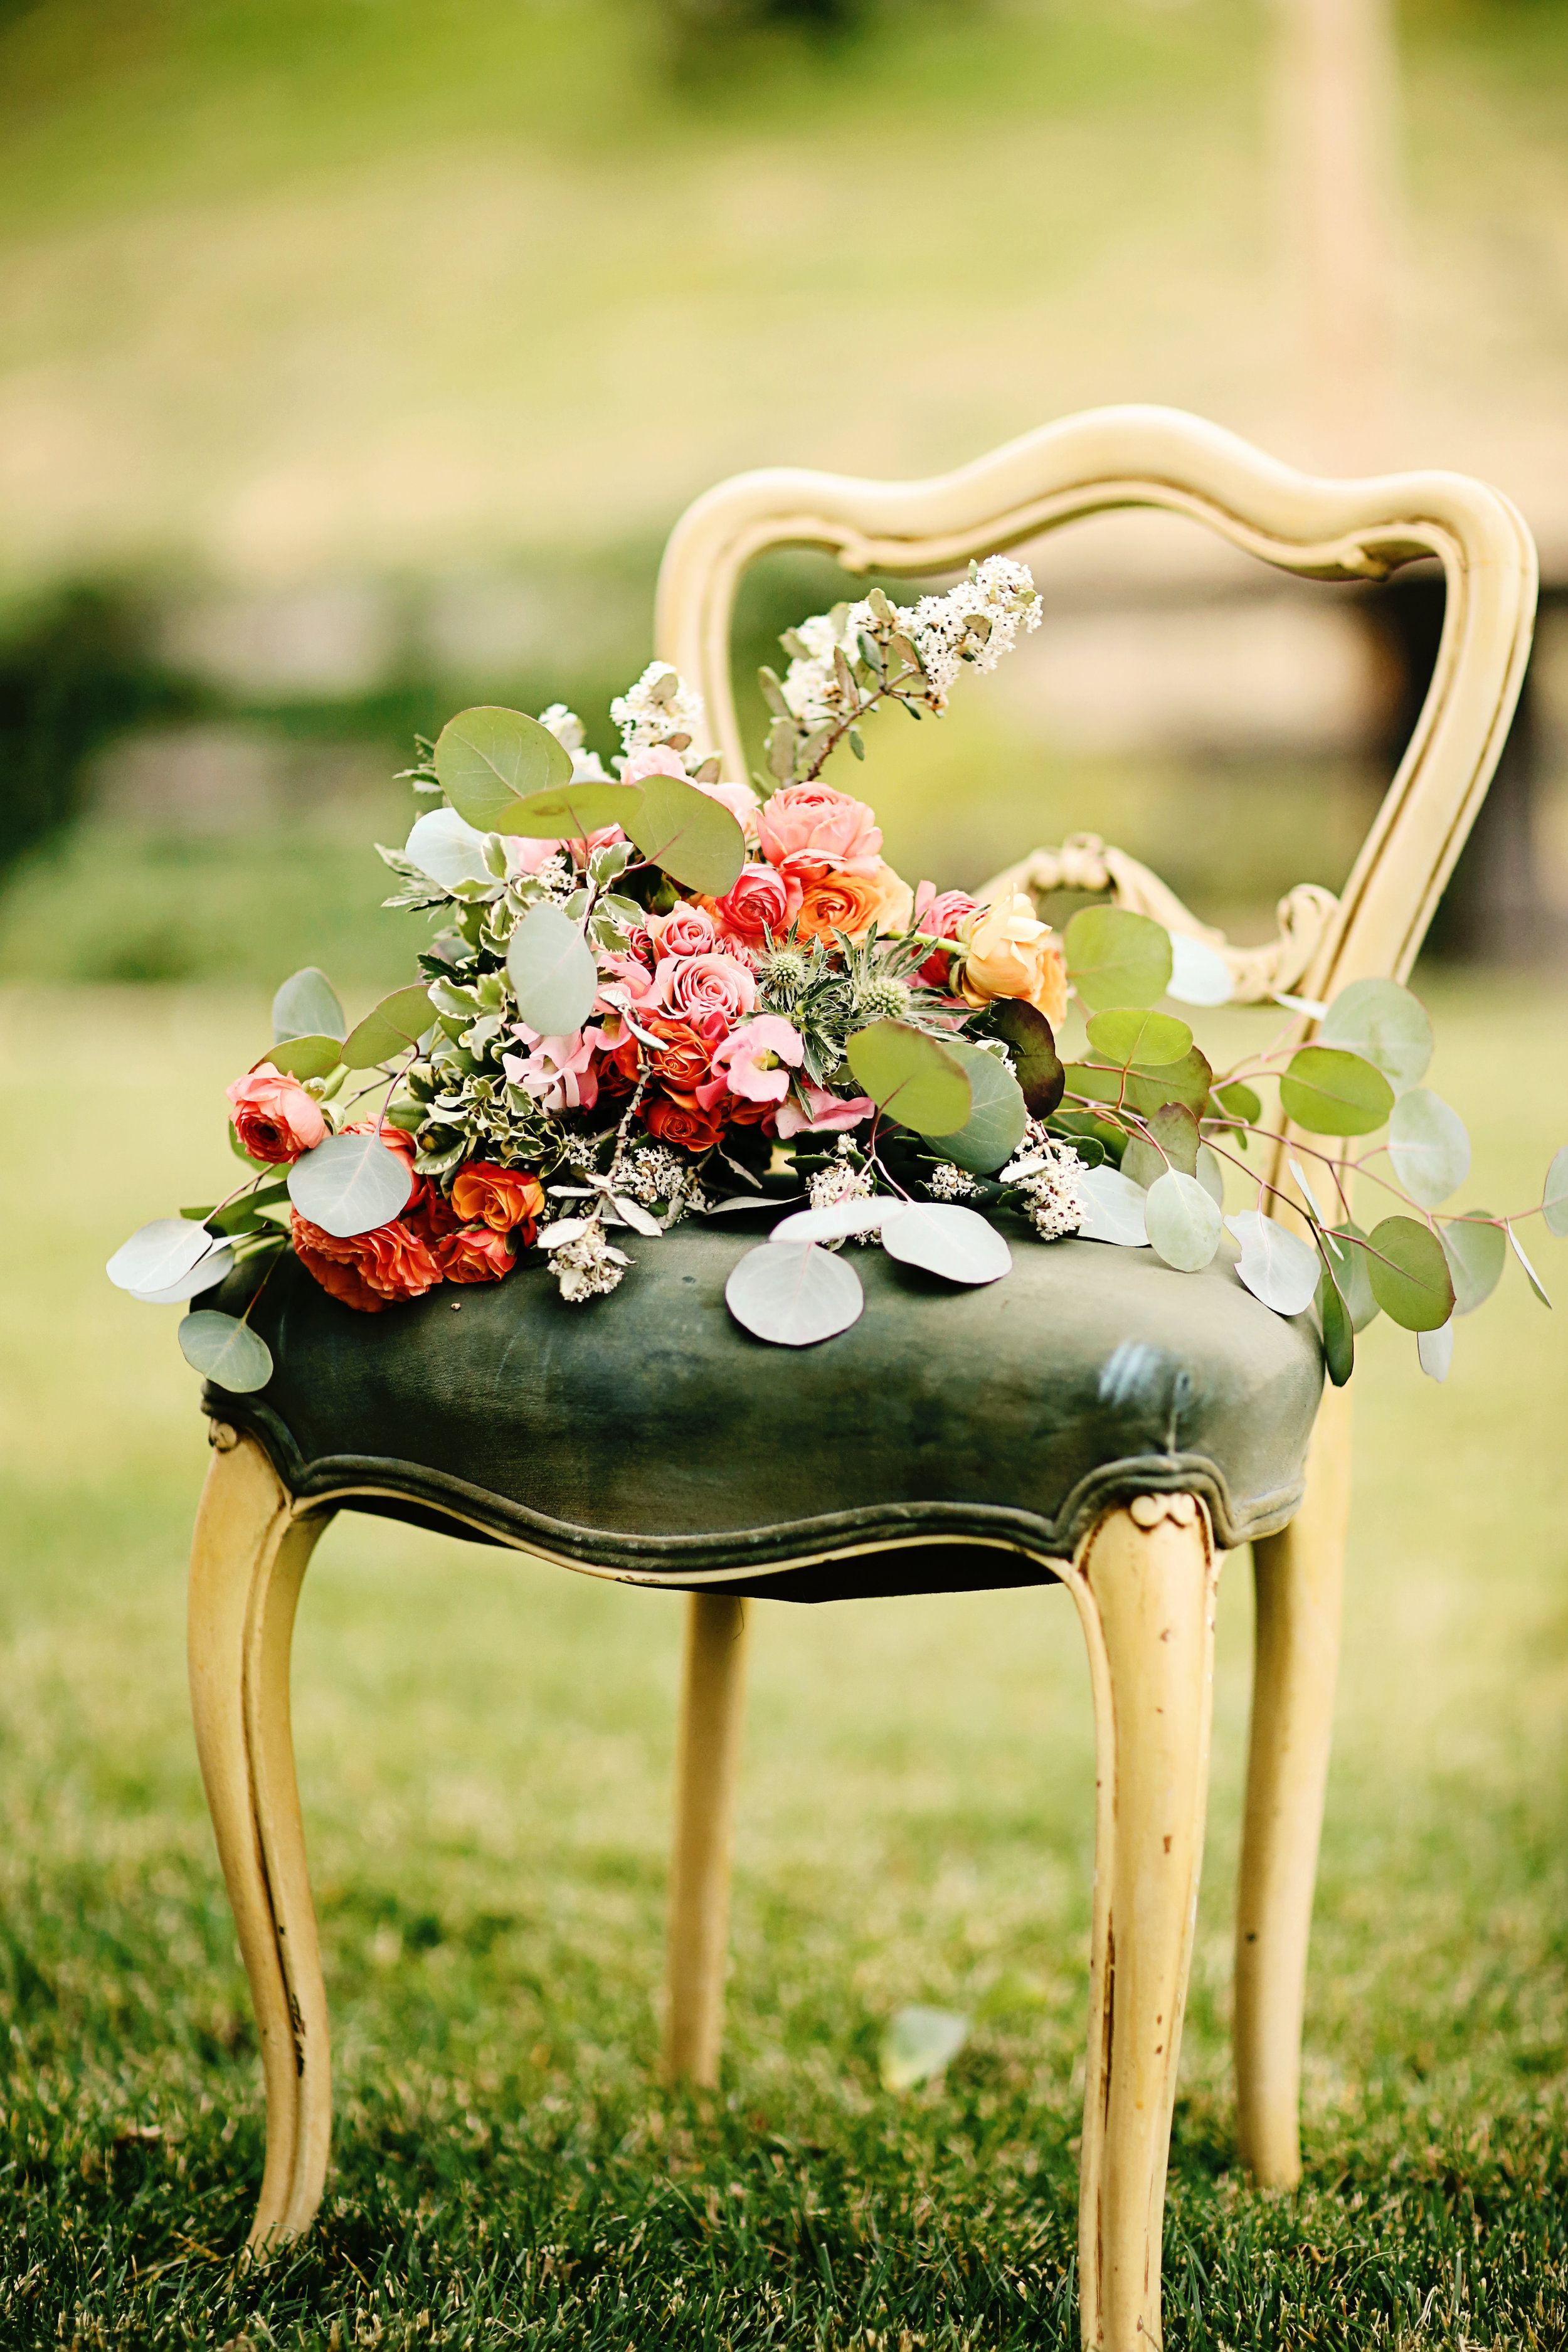 Vintage French provincial chair with a velvet seat. Brides bouquet sitting on the chair. Vintage wedding furniture rental in The Temecula Valley.